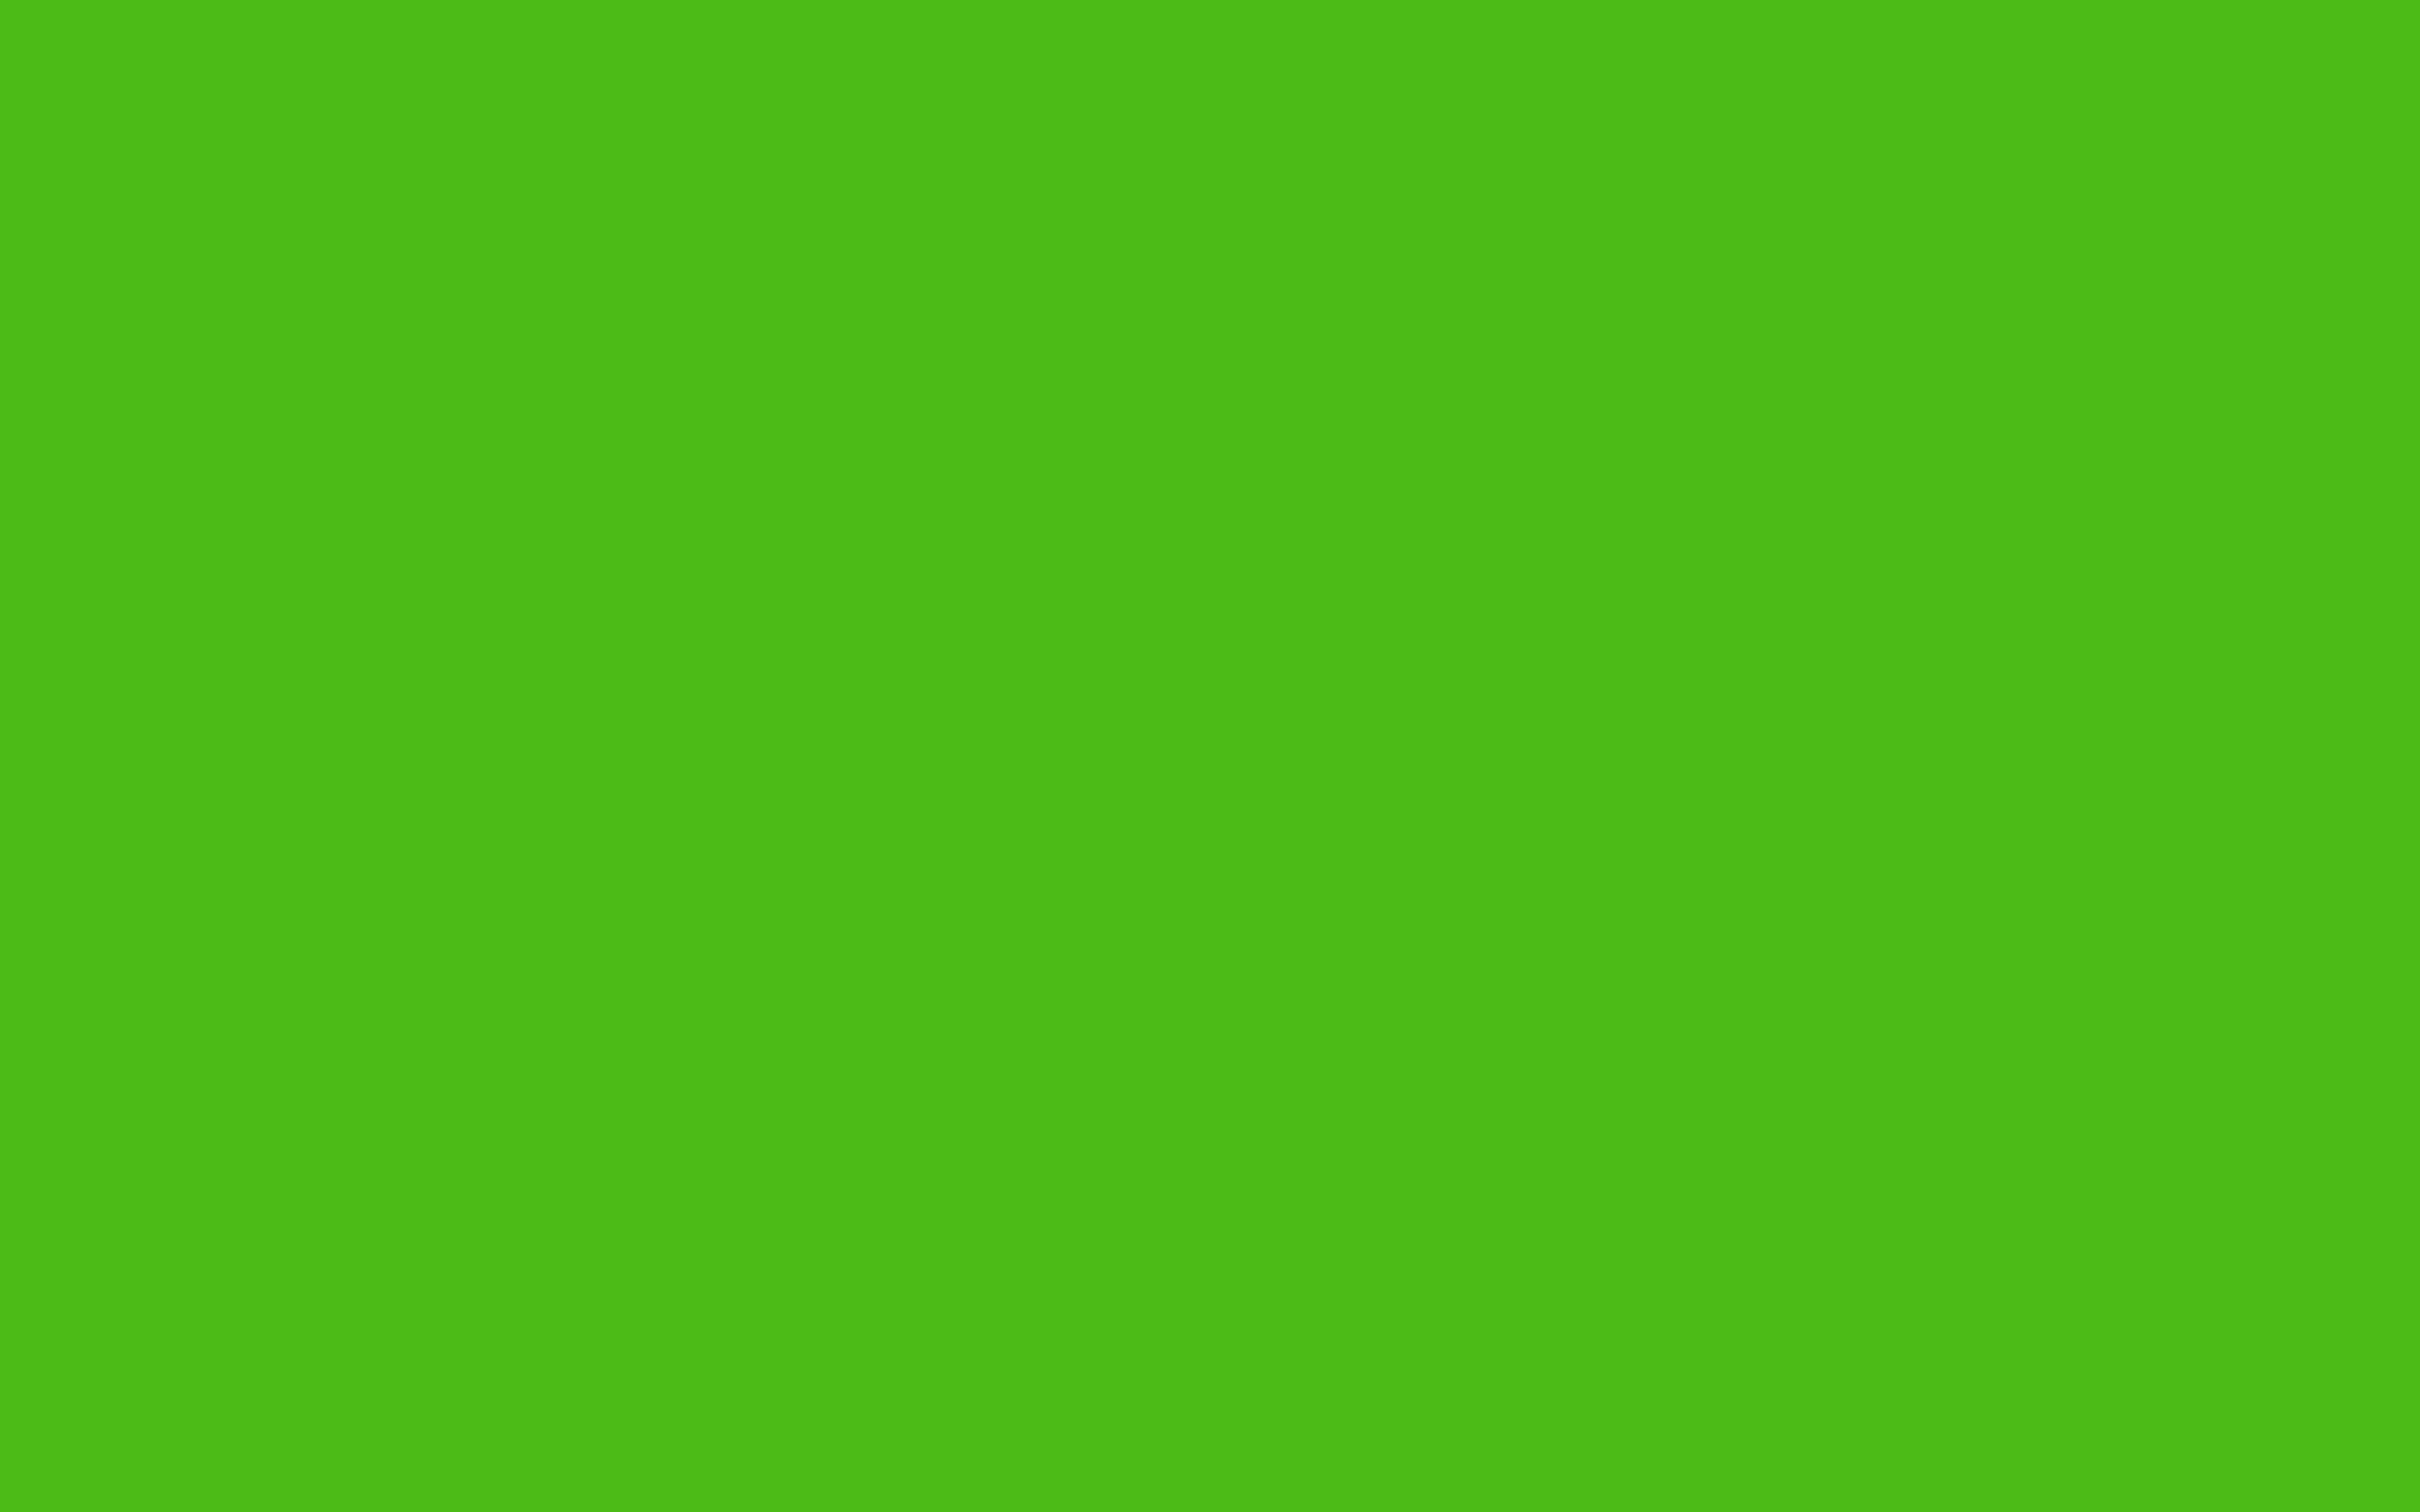 Free download 2560x1600 resolution Kelly Green solid color